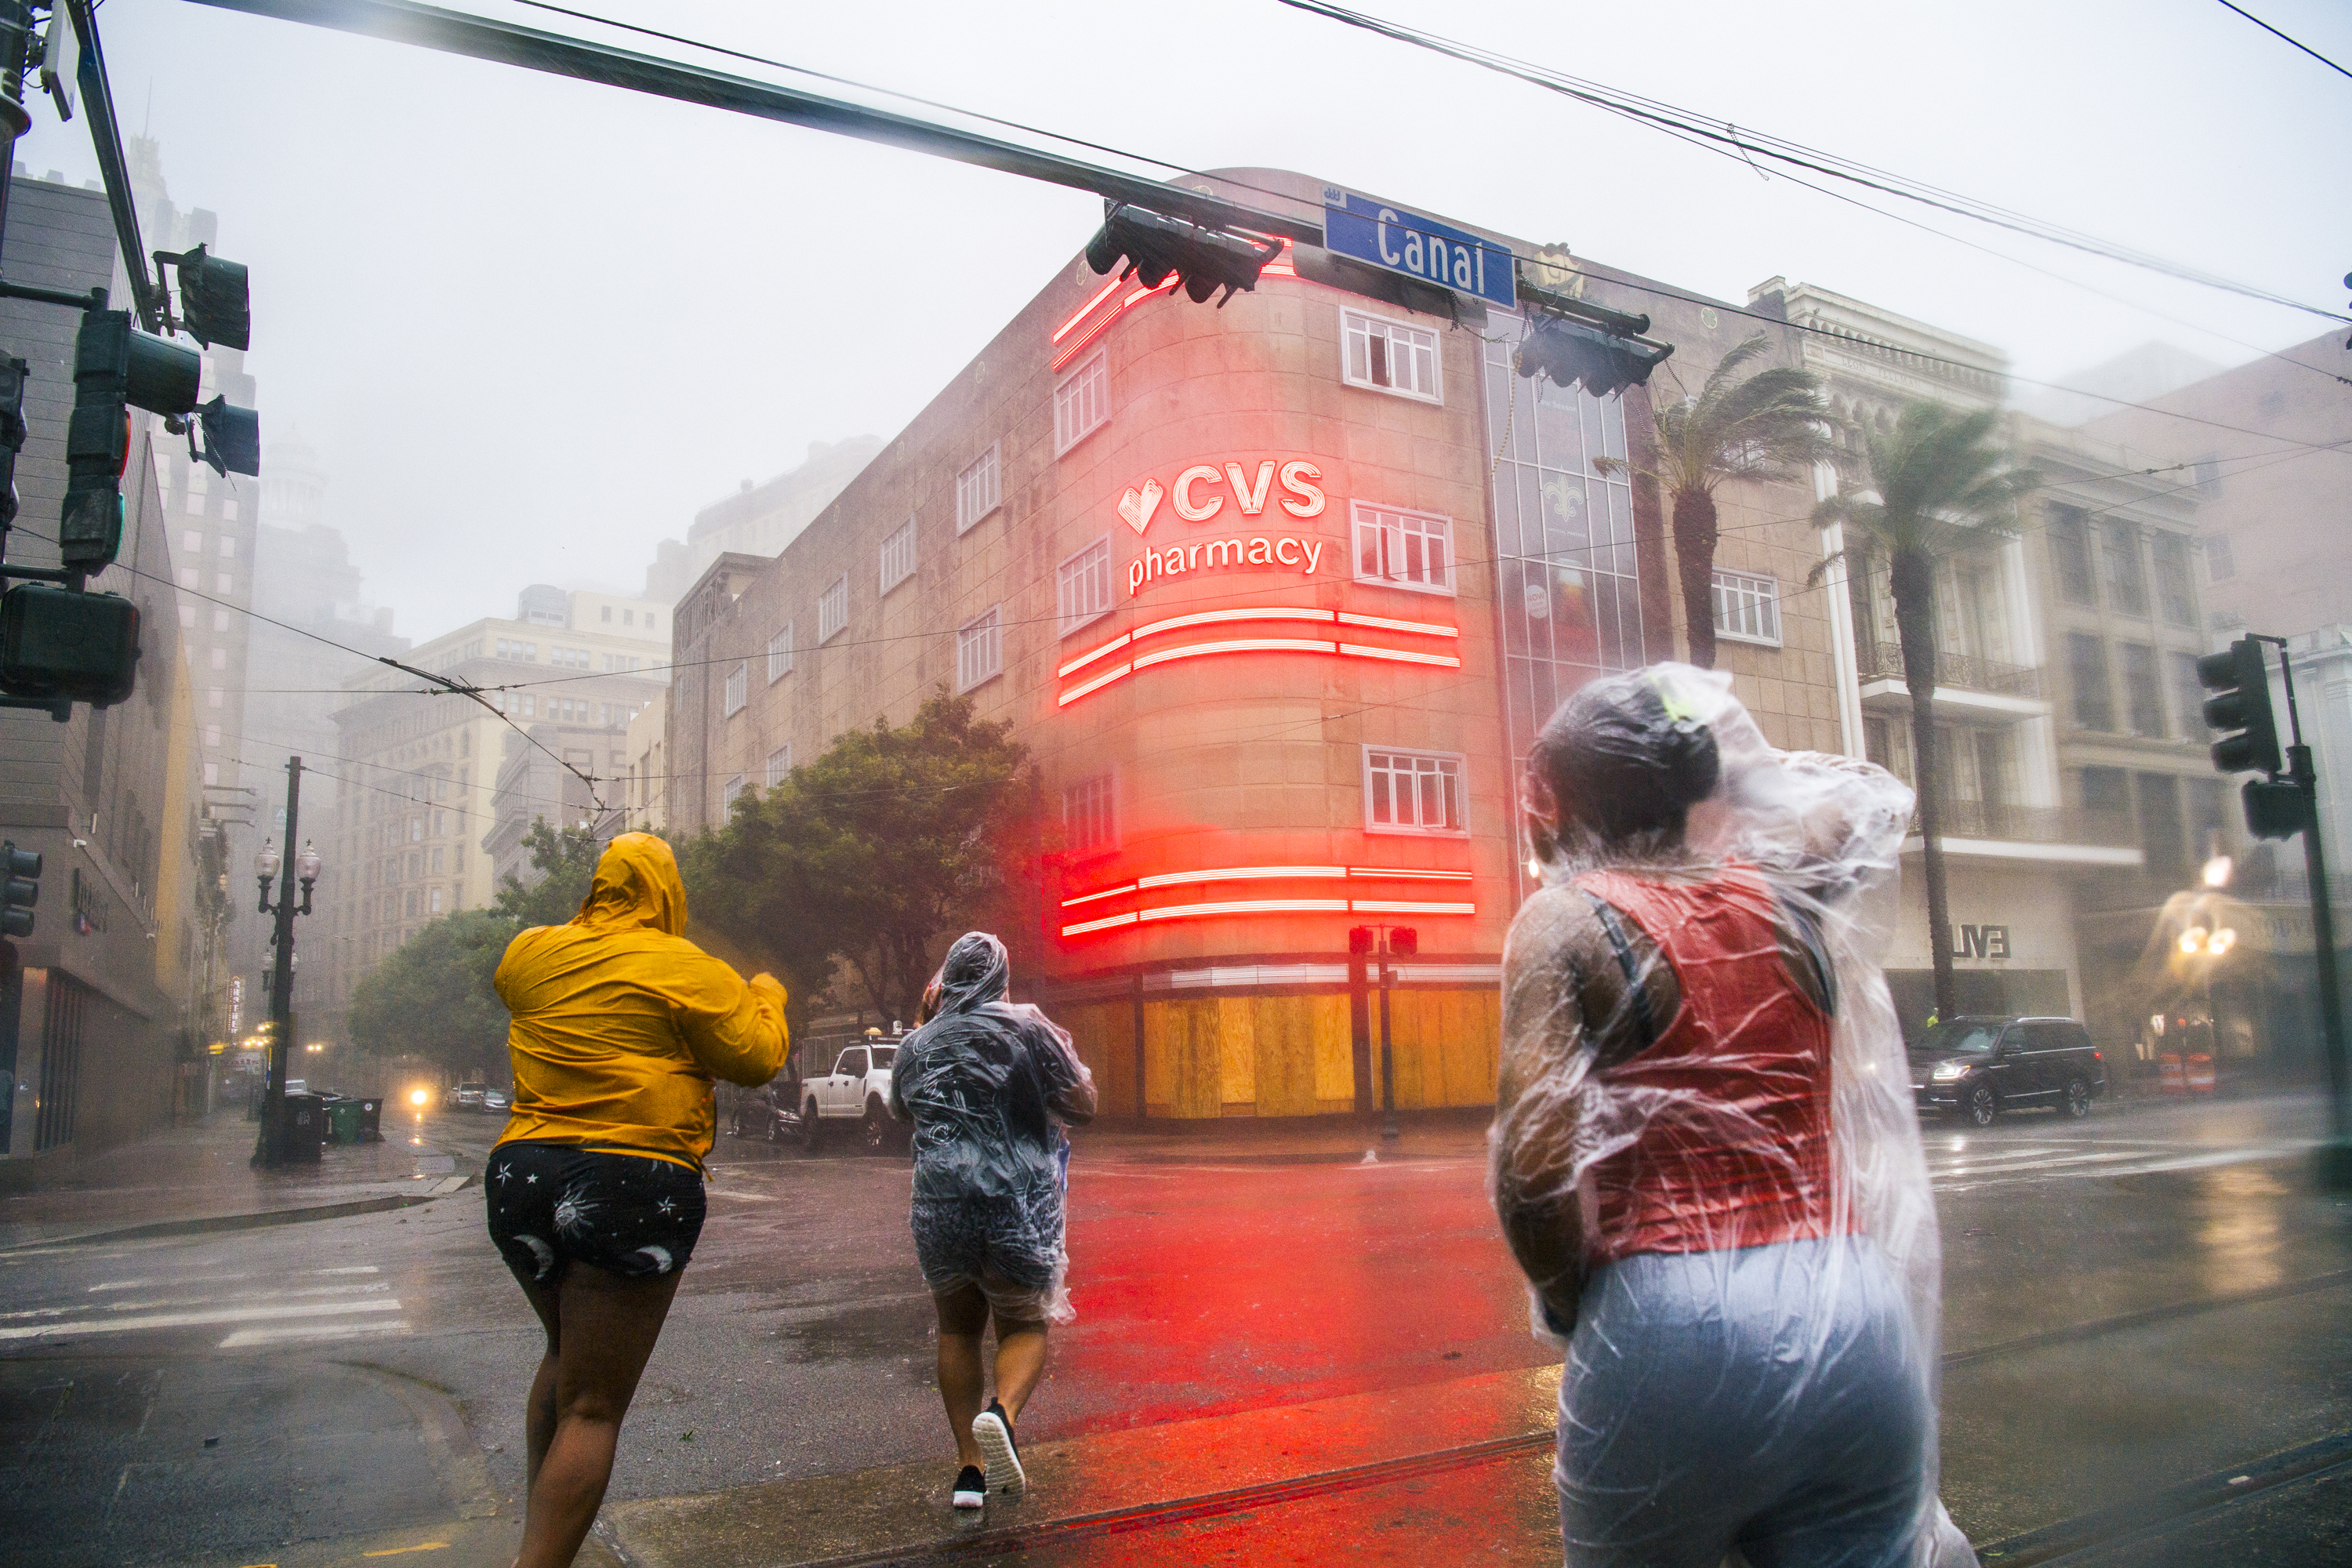 People run across a street in New Orleans in the rain and wind.